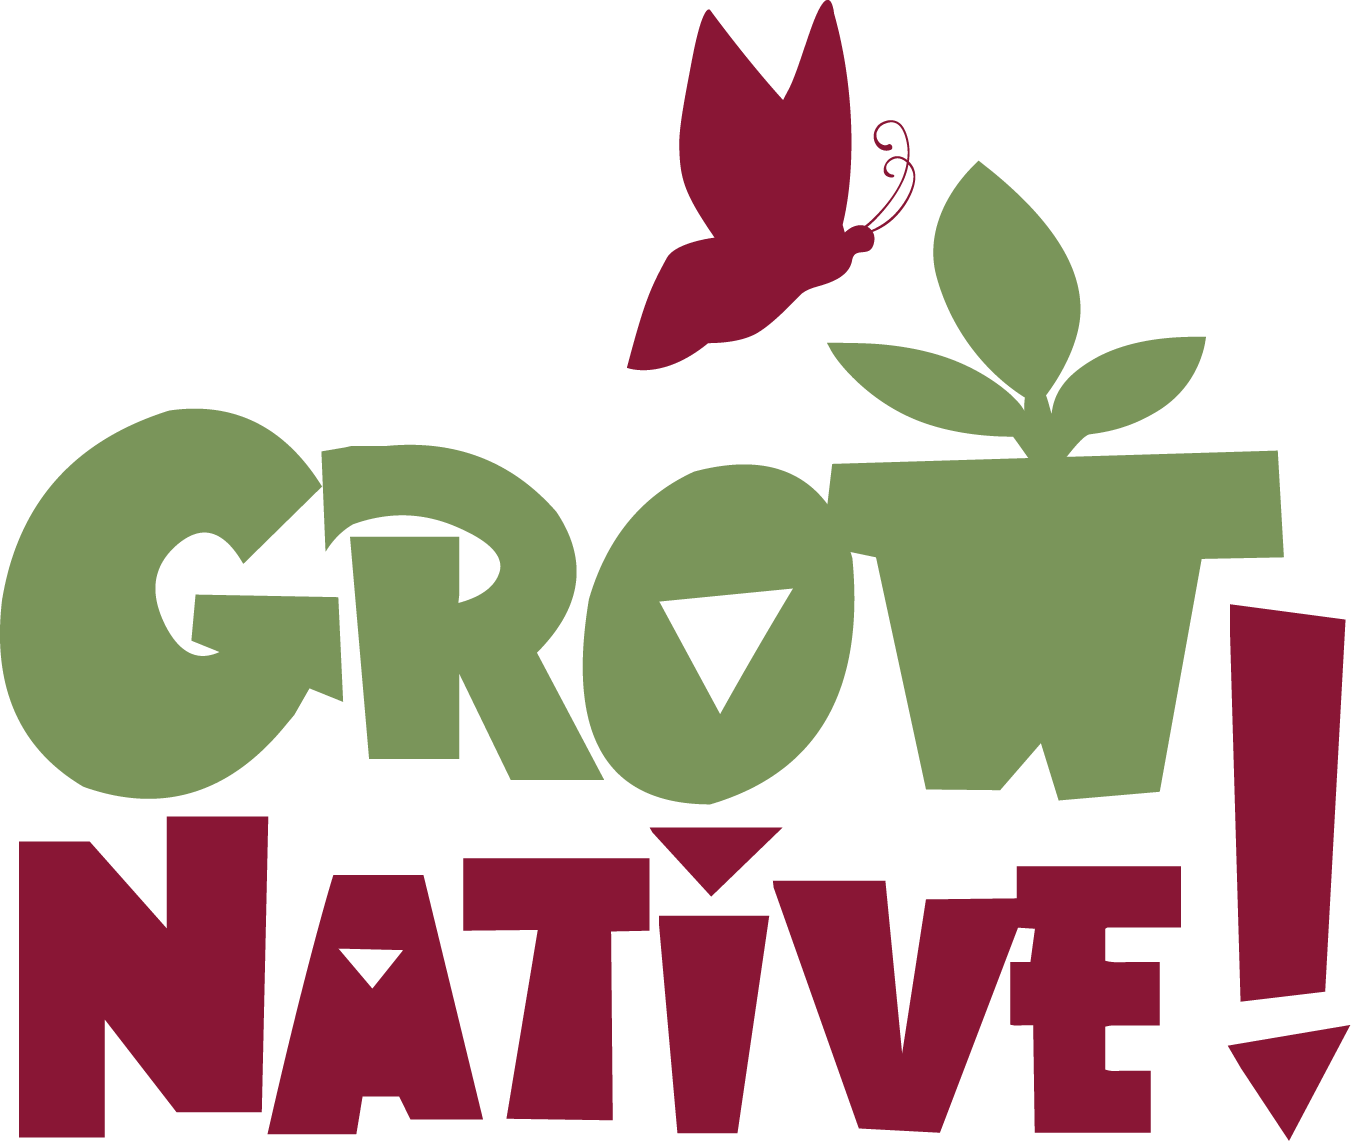 GrowNative_2color.pn